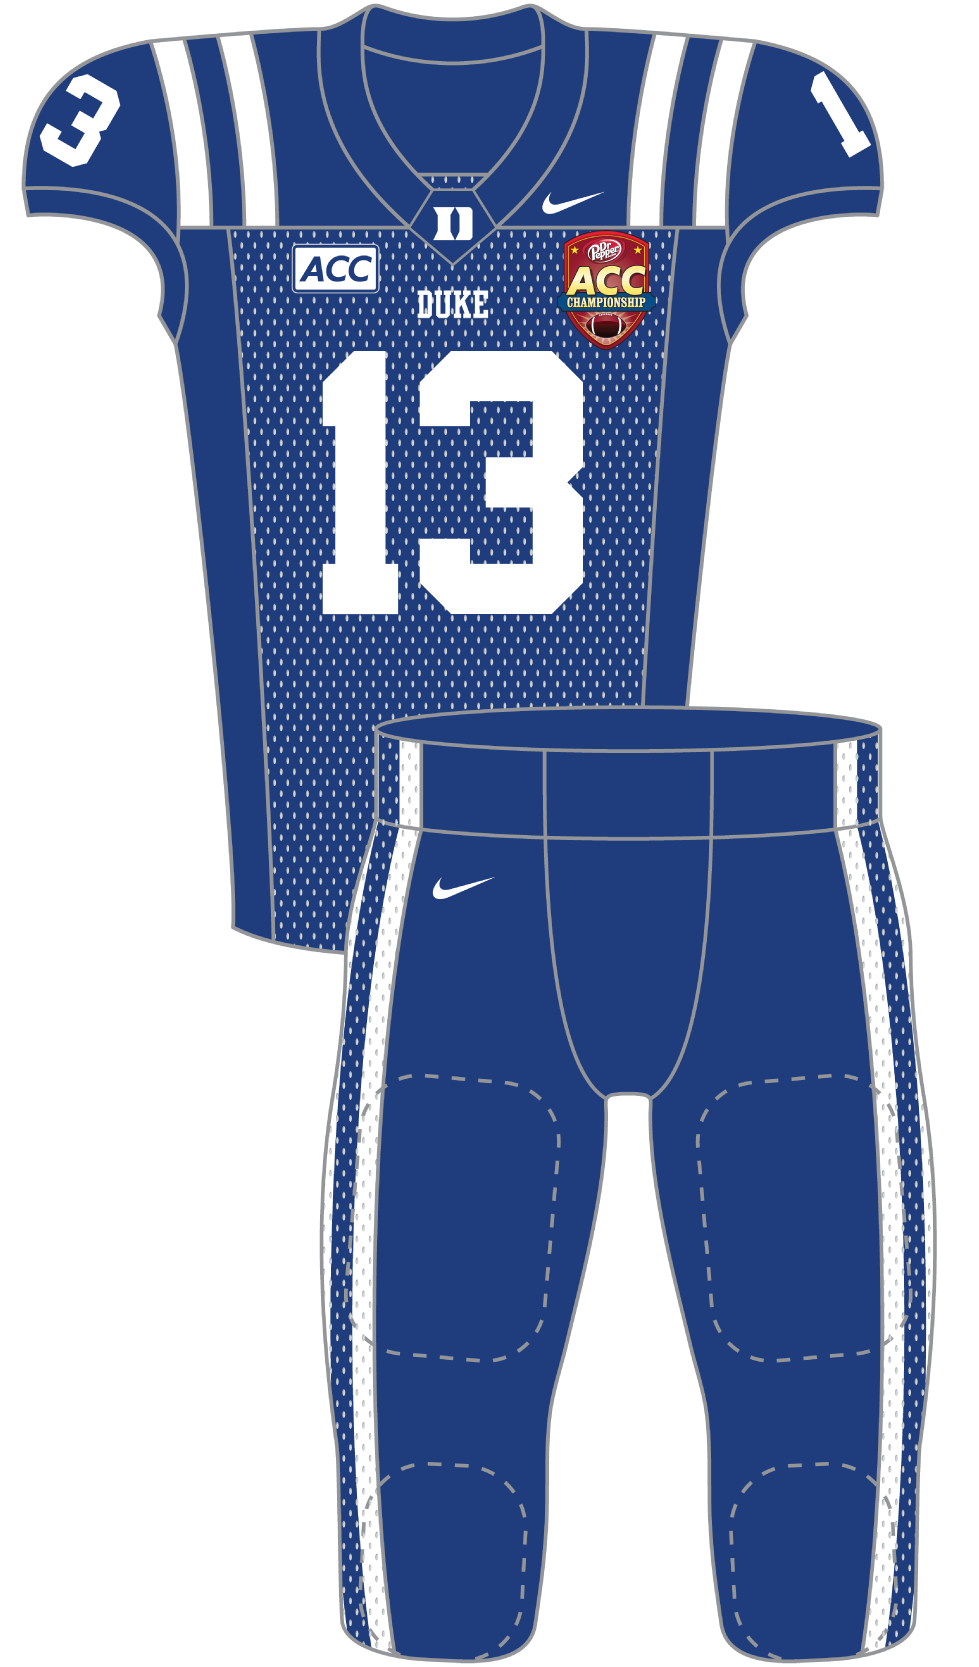 Duke 2013 Blue Uniform